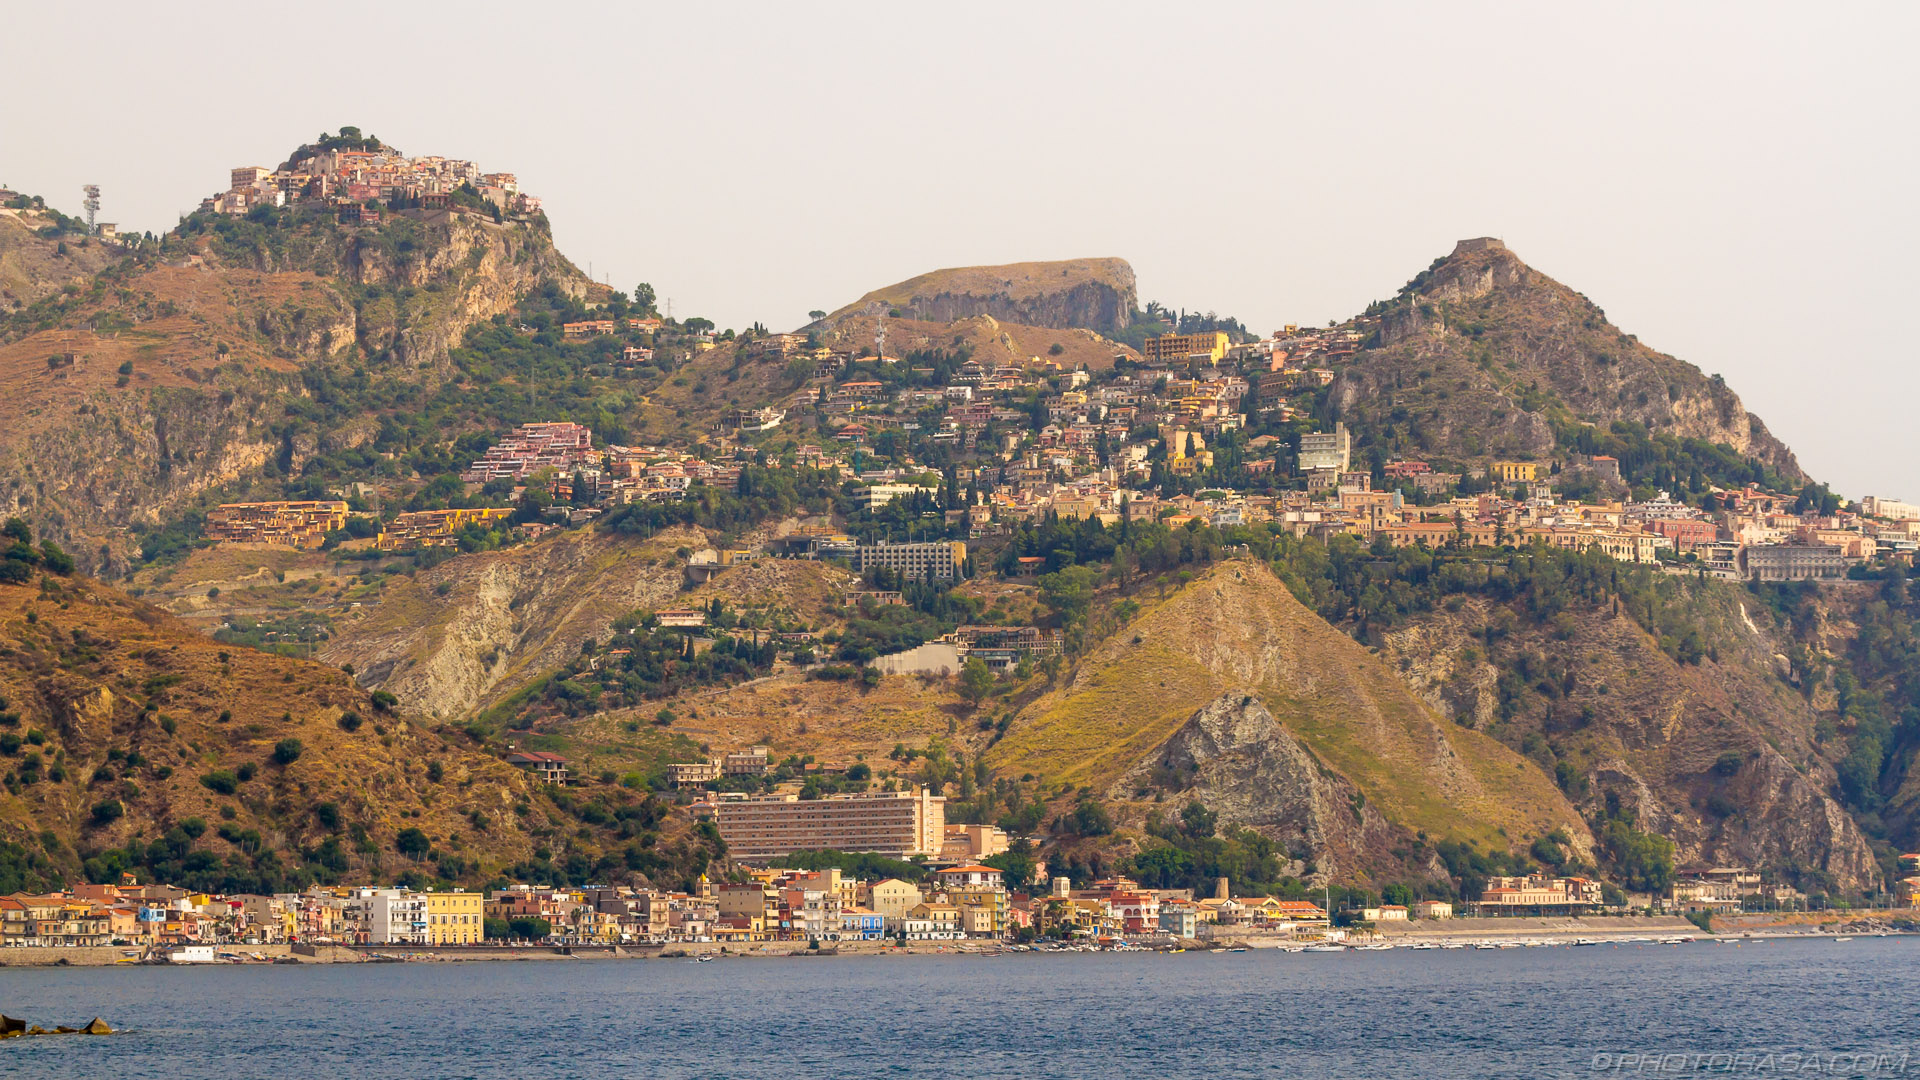 https://photorasa.com/giardini-naxos/east-sicily-coast-line-at-giardini-naxos/